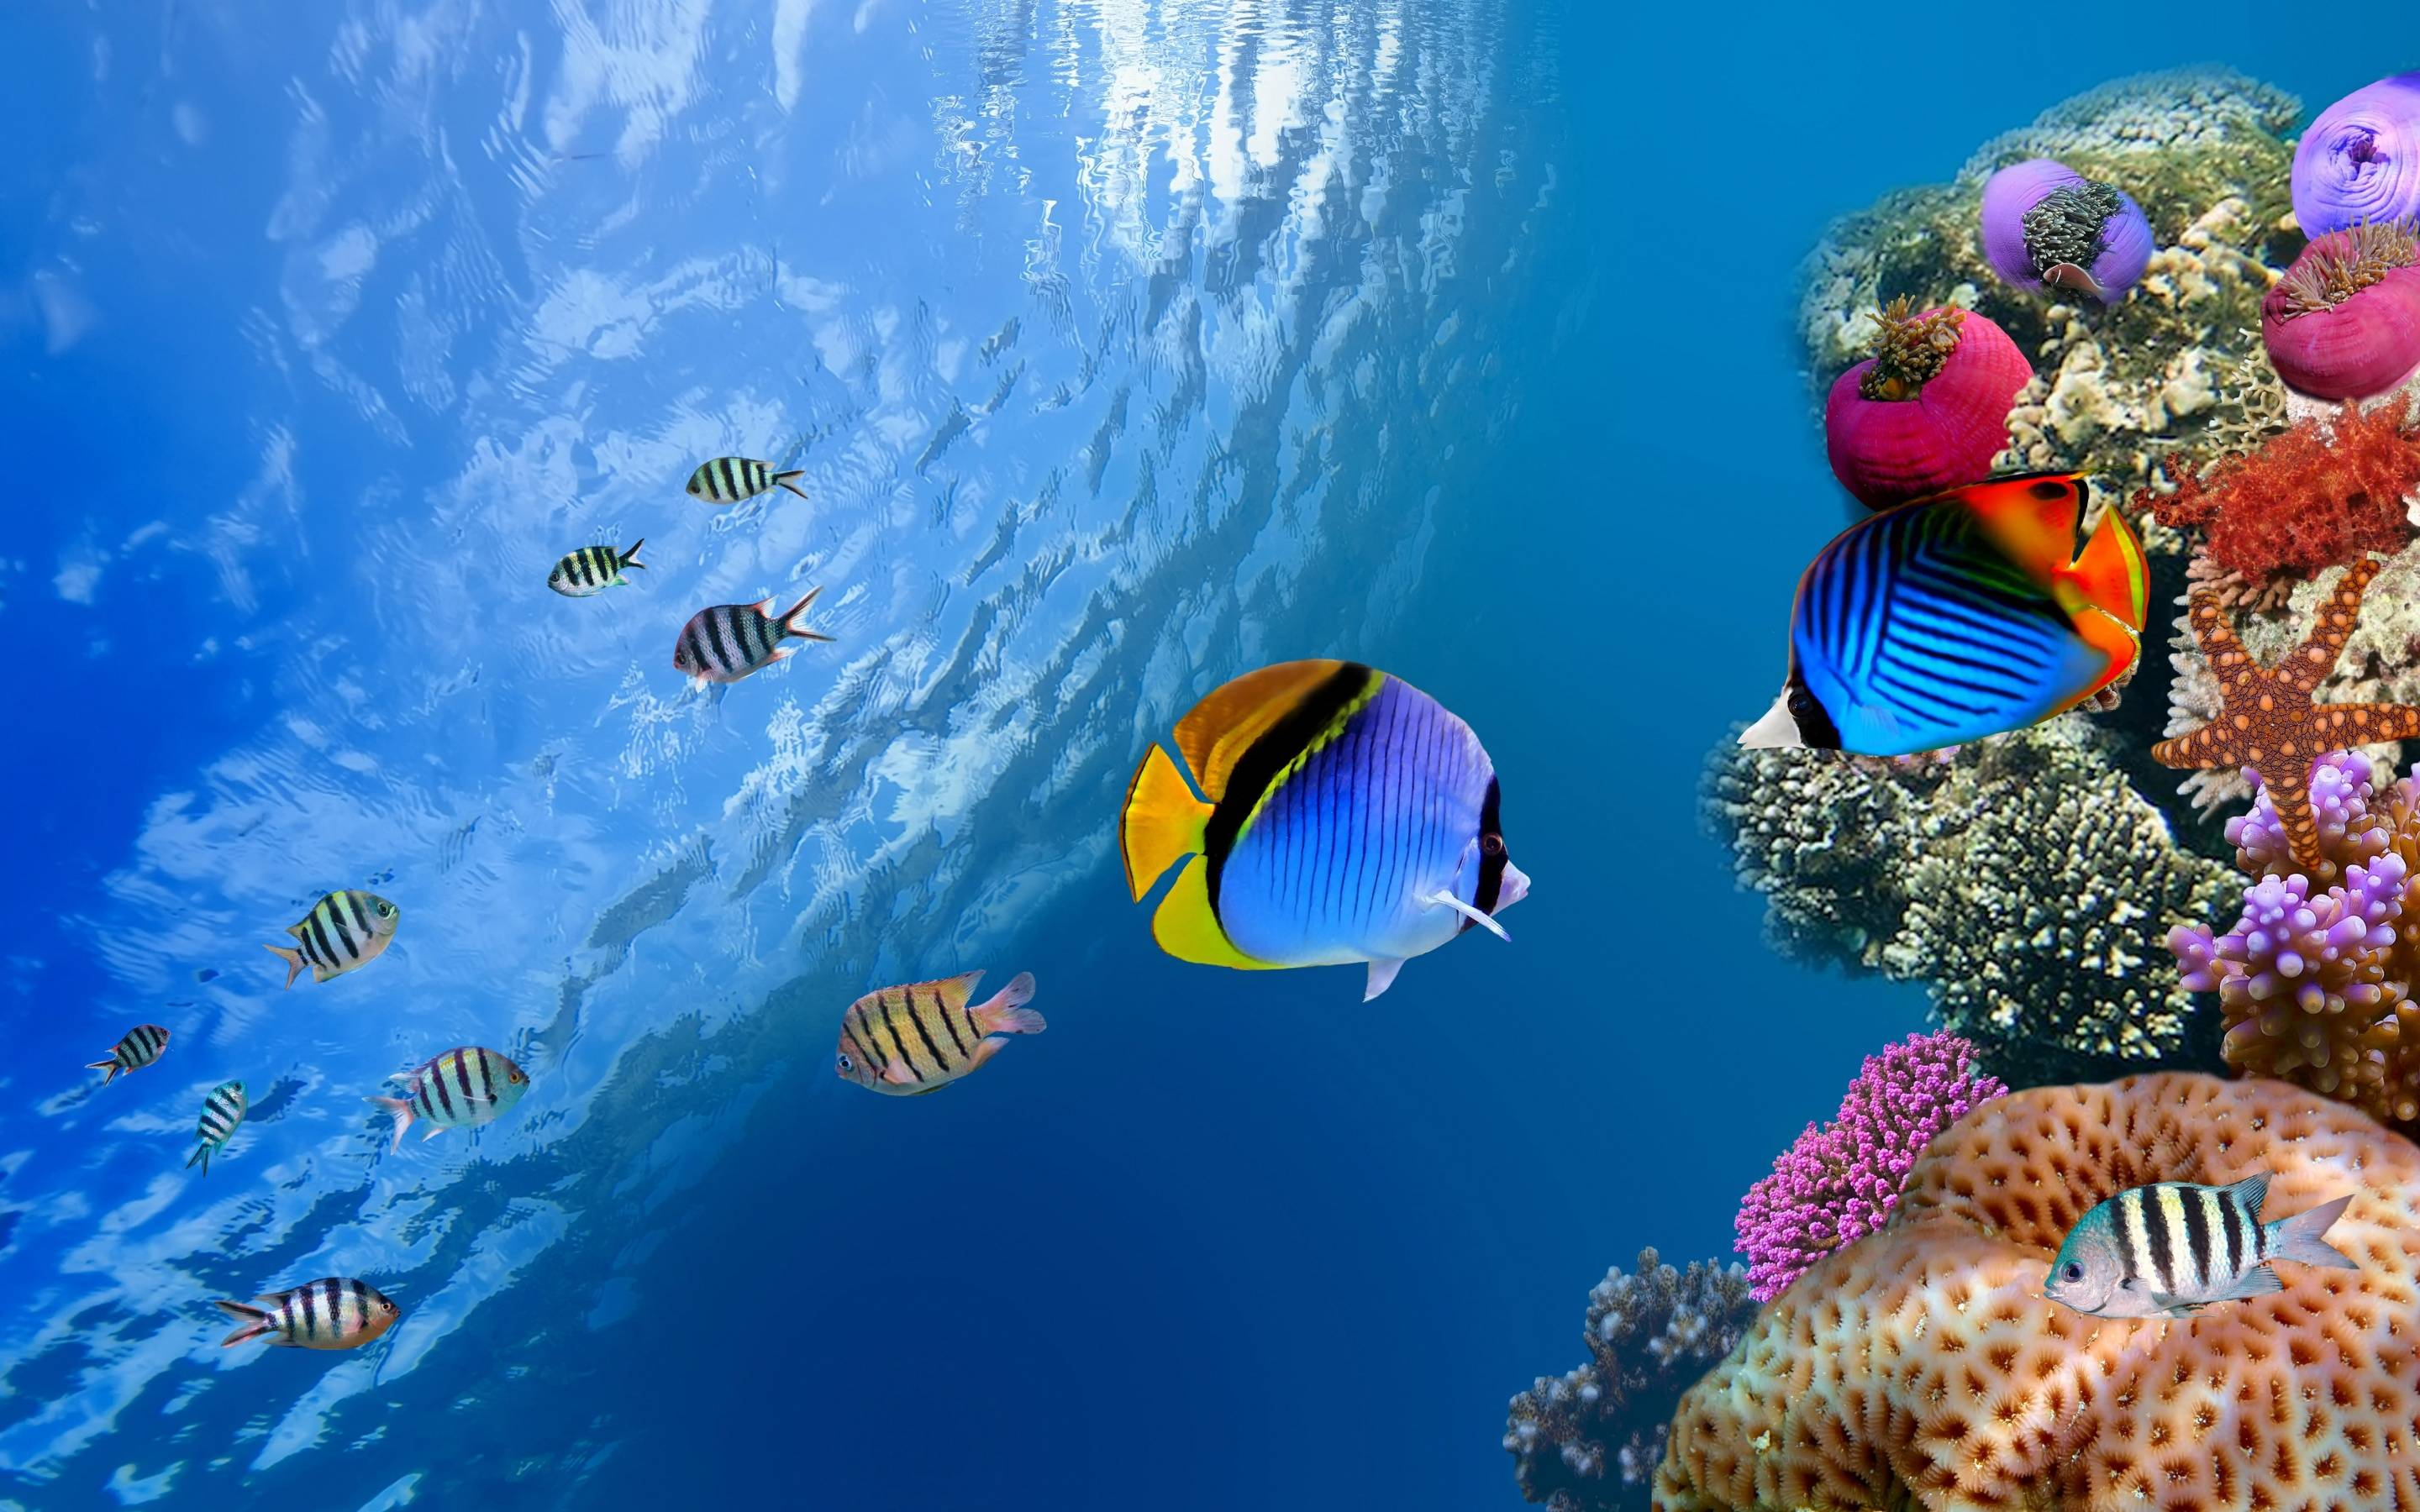 Underwater Wallpapers - Full HD wallpaper search